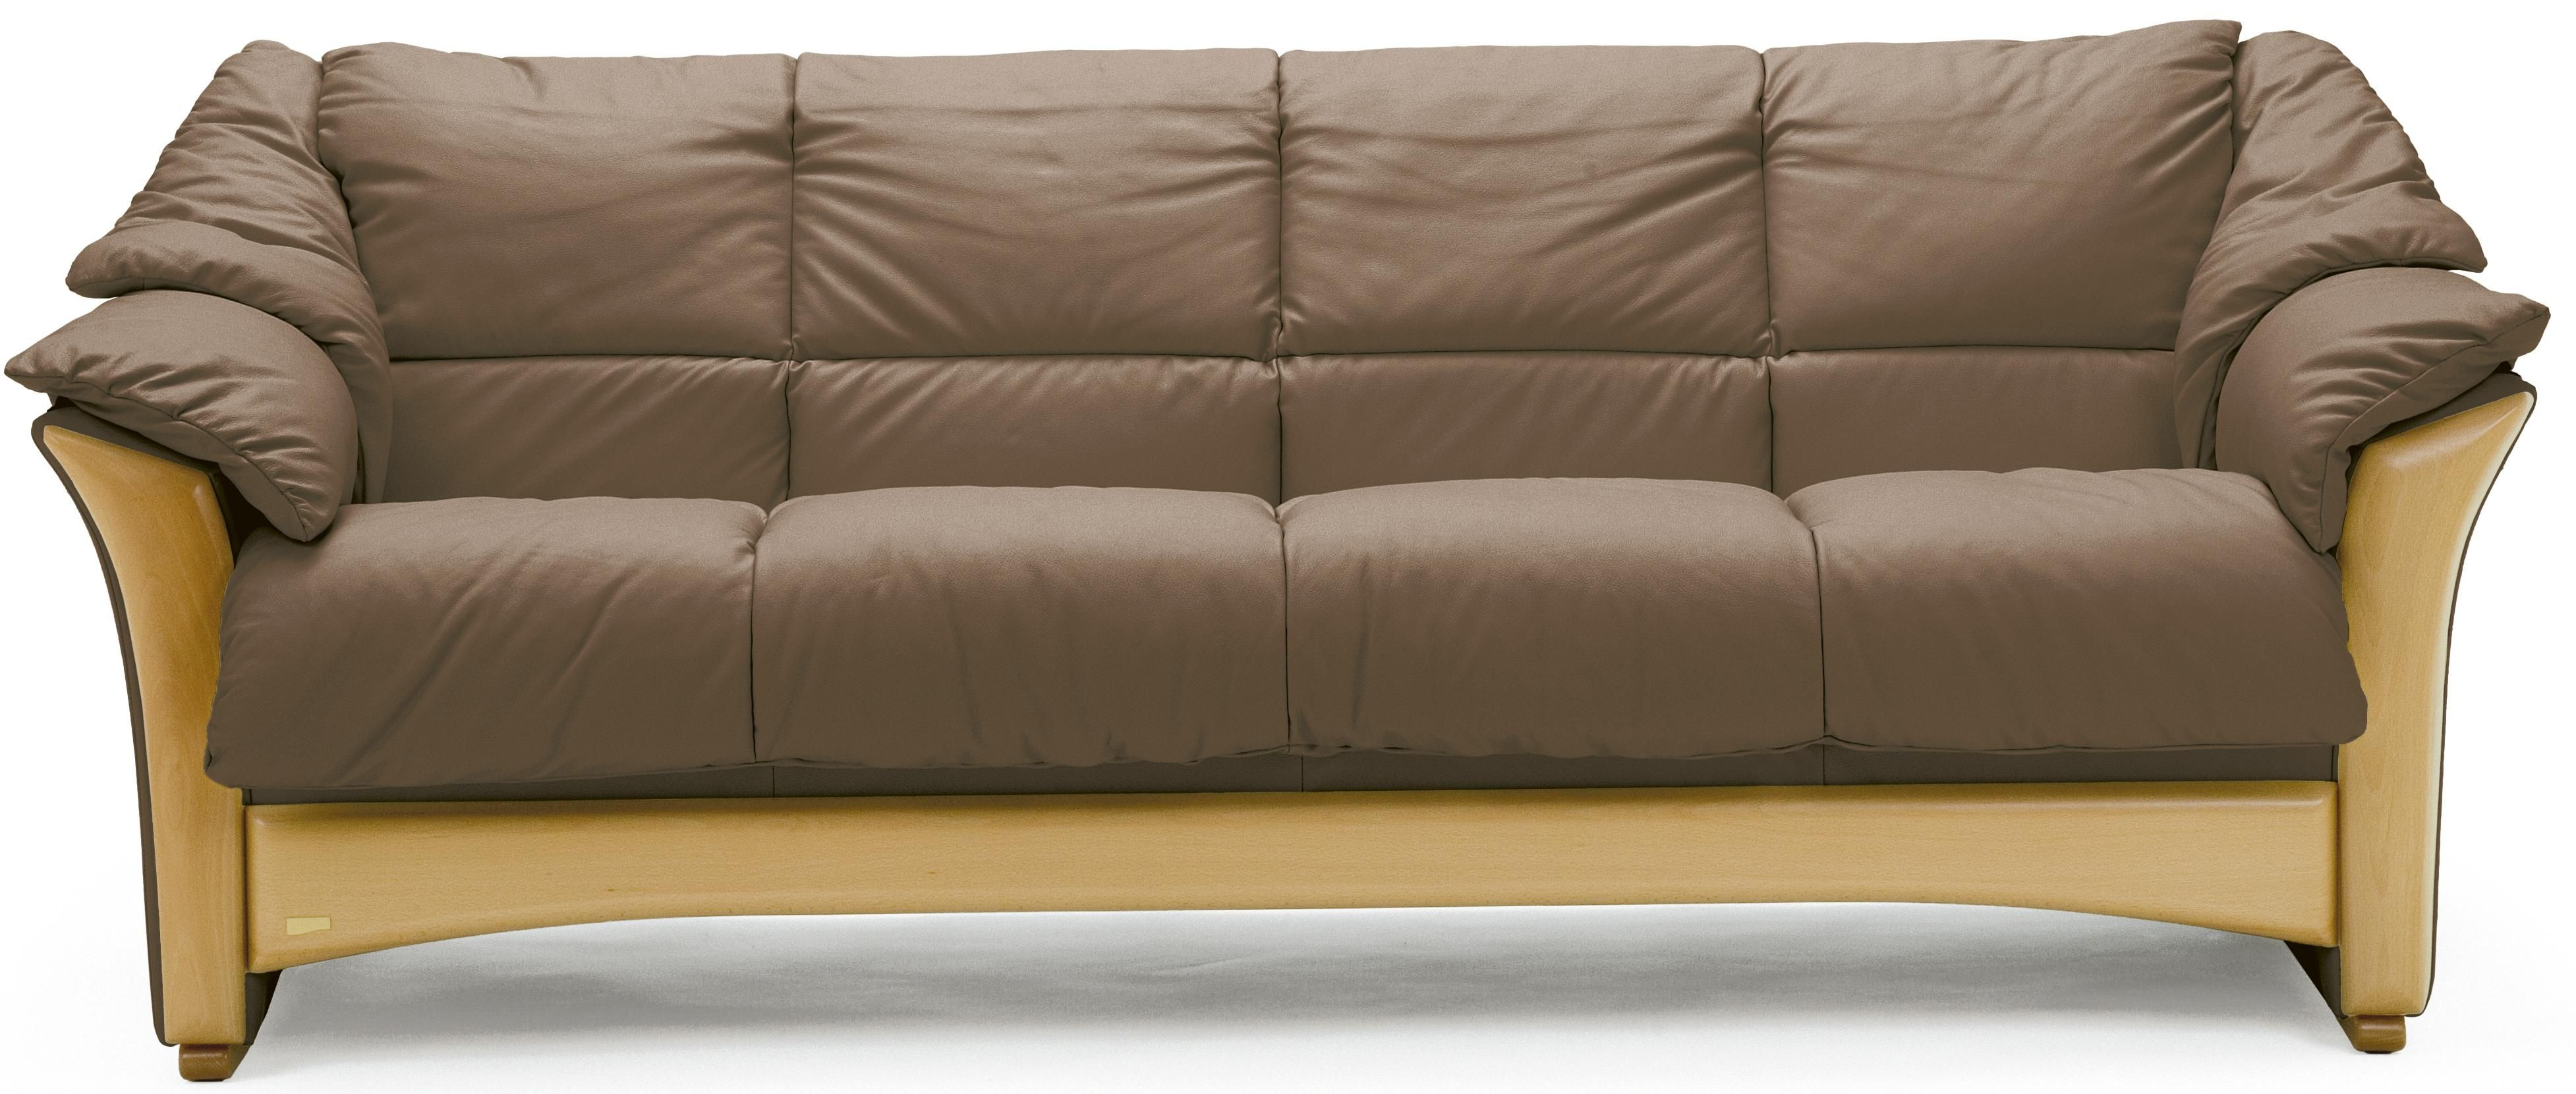 Stressless by Ekornes Furniture: Oslo Collection sofa in 3 and 4 ...